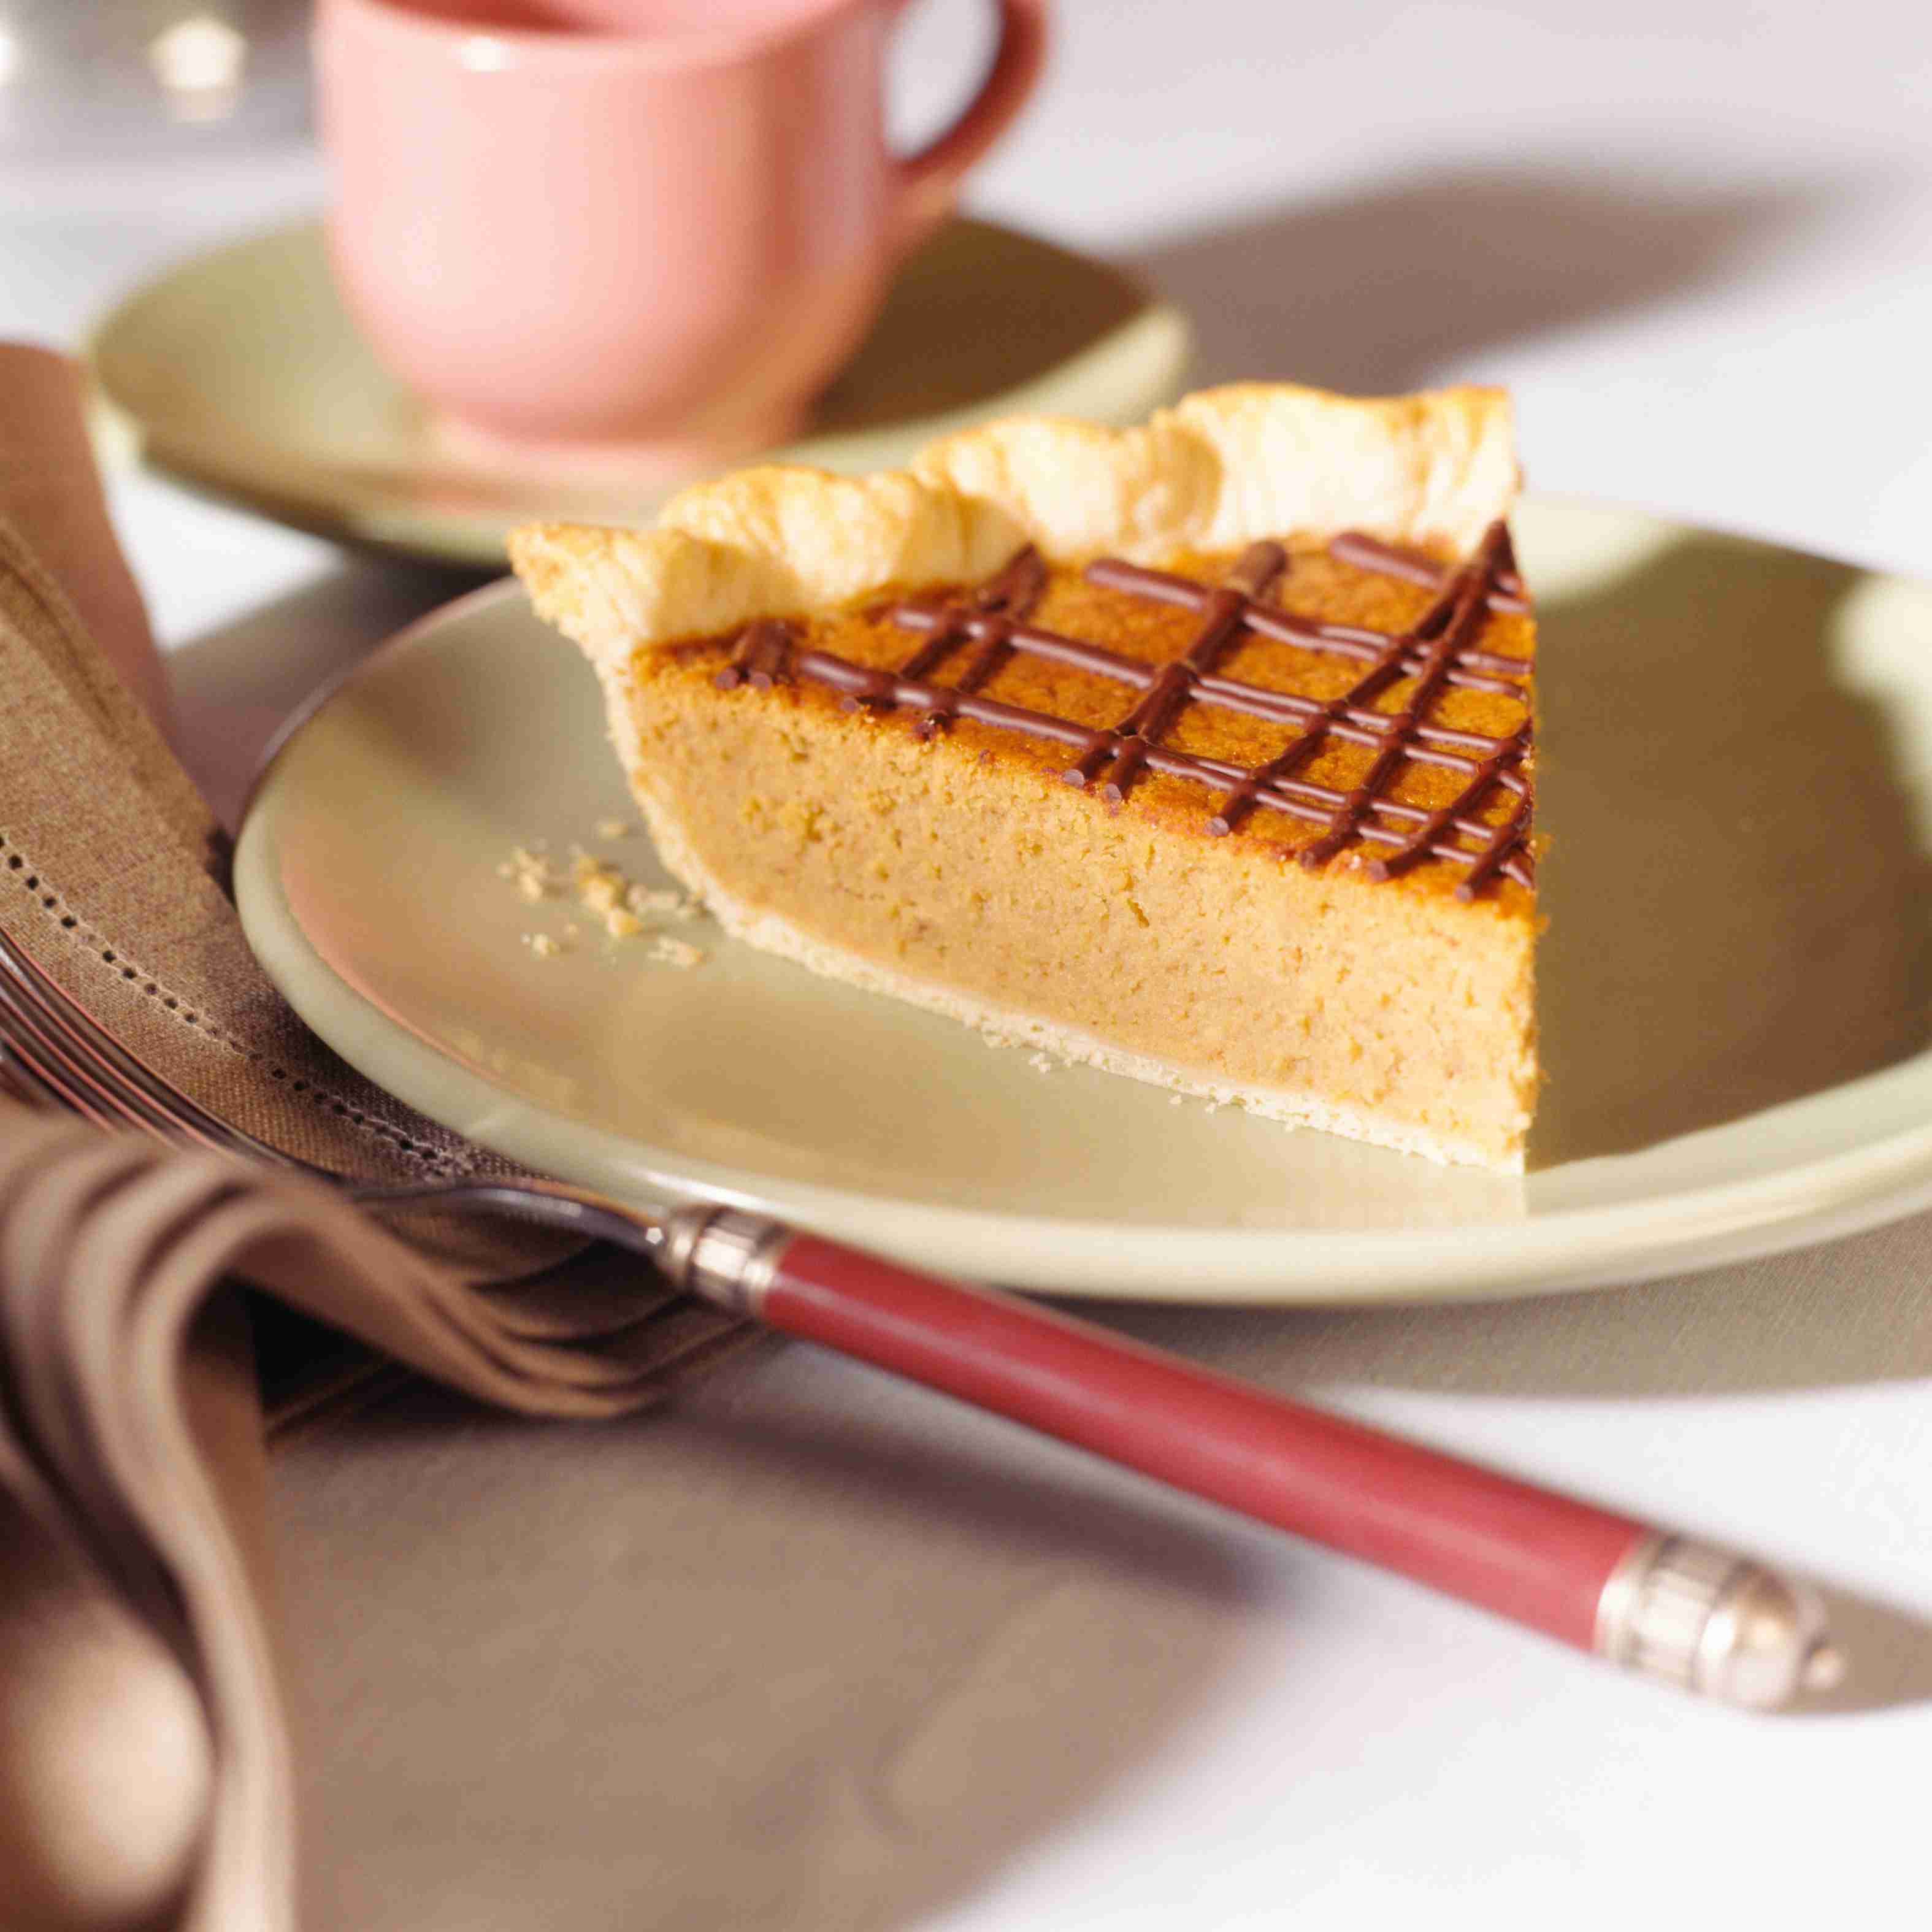 Pumpkin Pie with chocolate